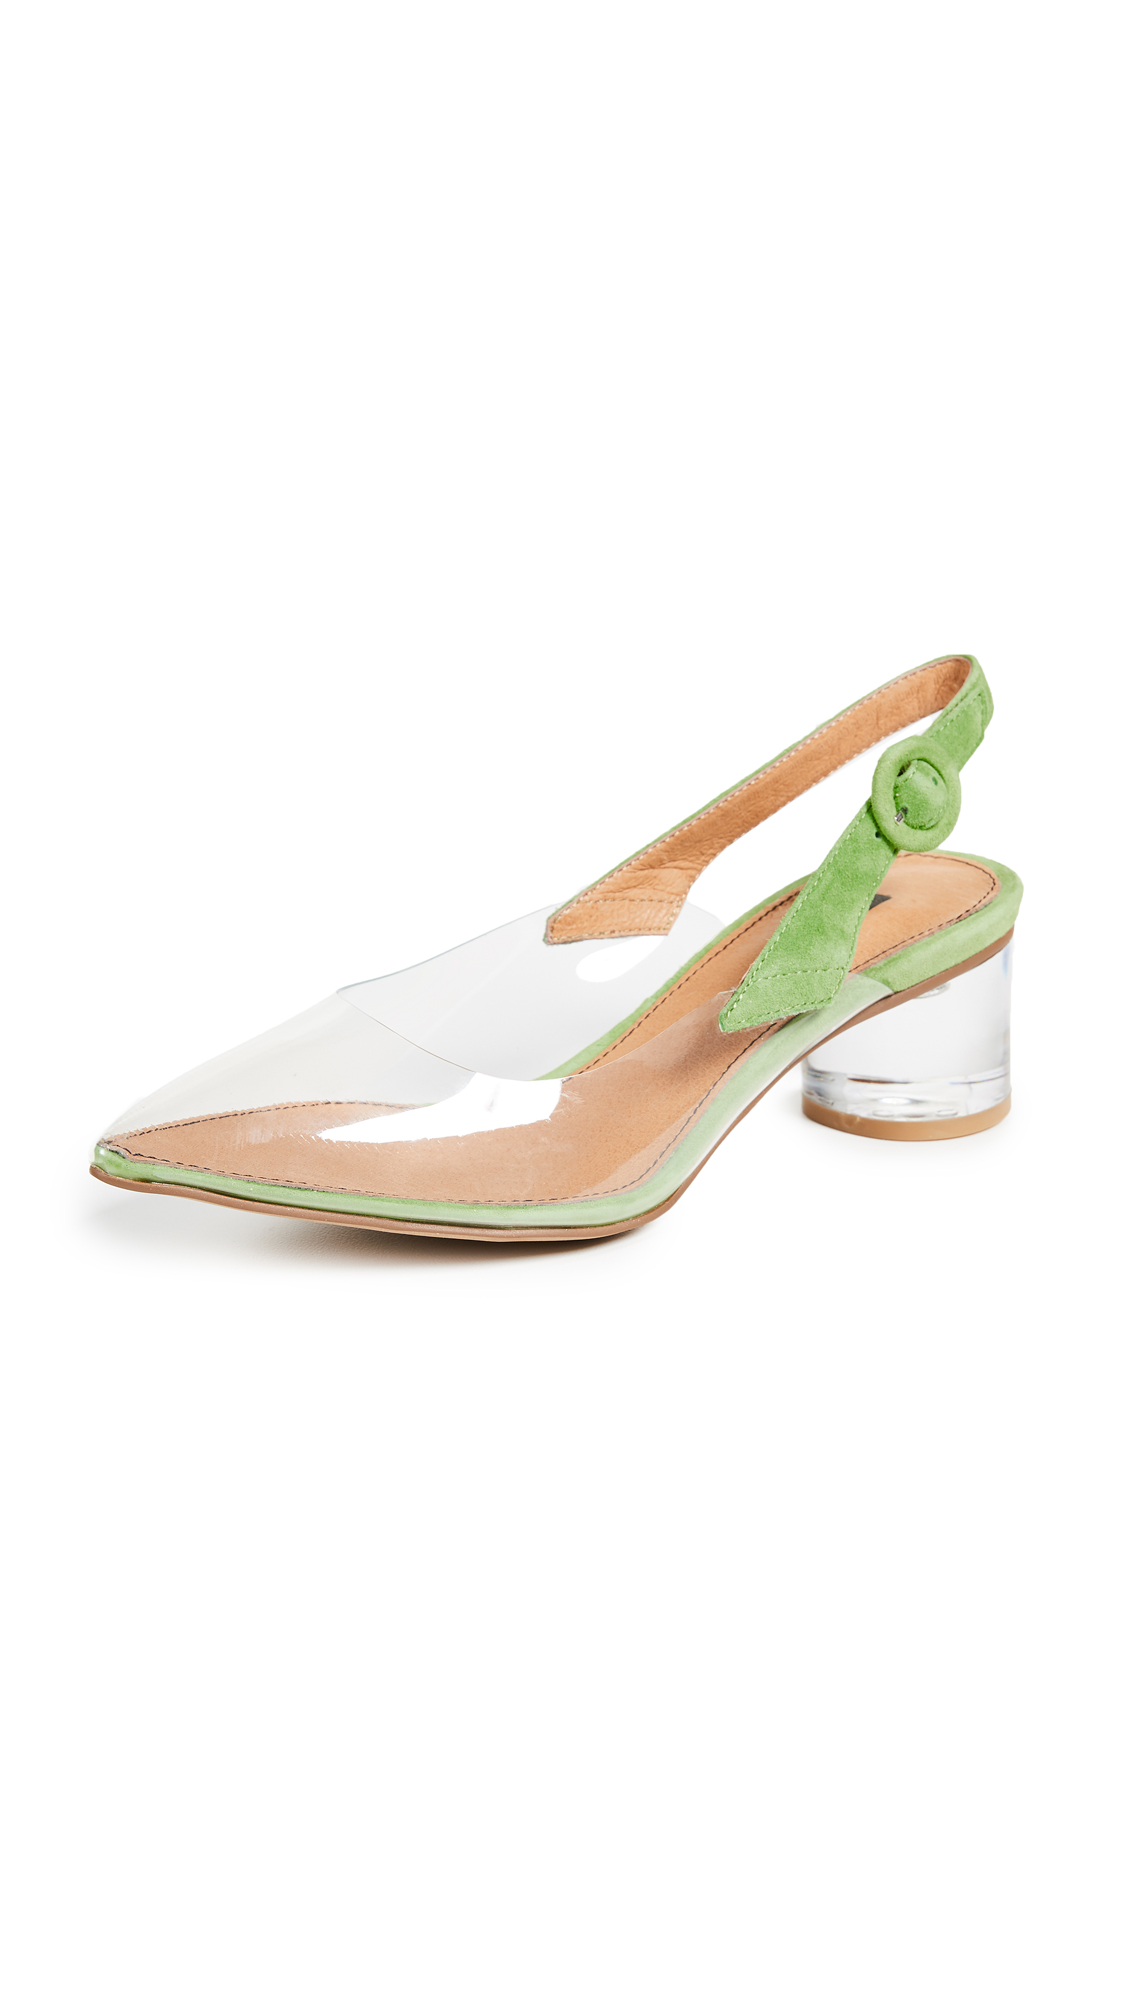 Matiko Zuma Block Heel Pumps - Clear/Green